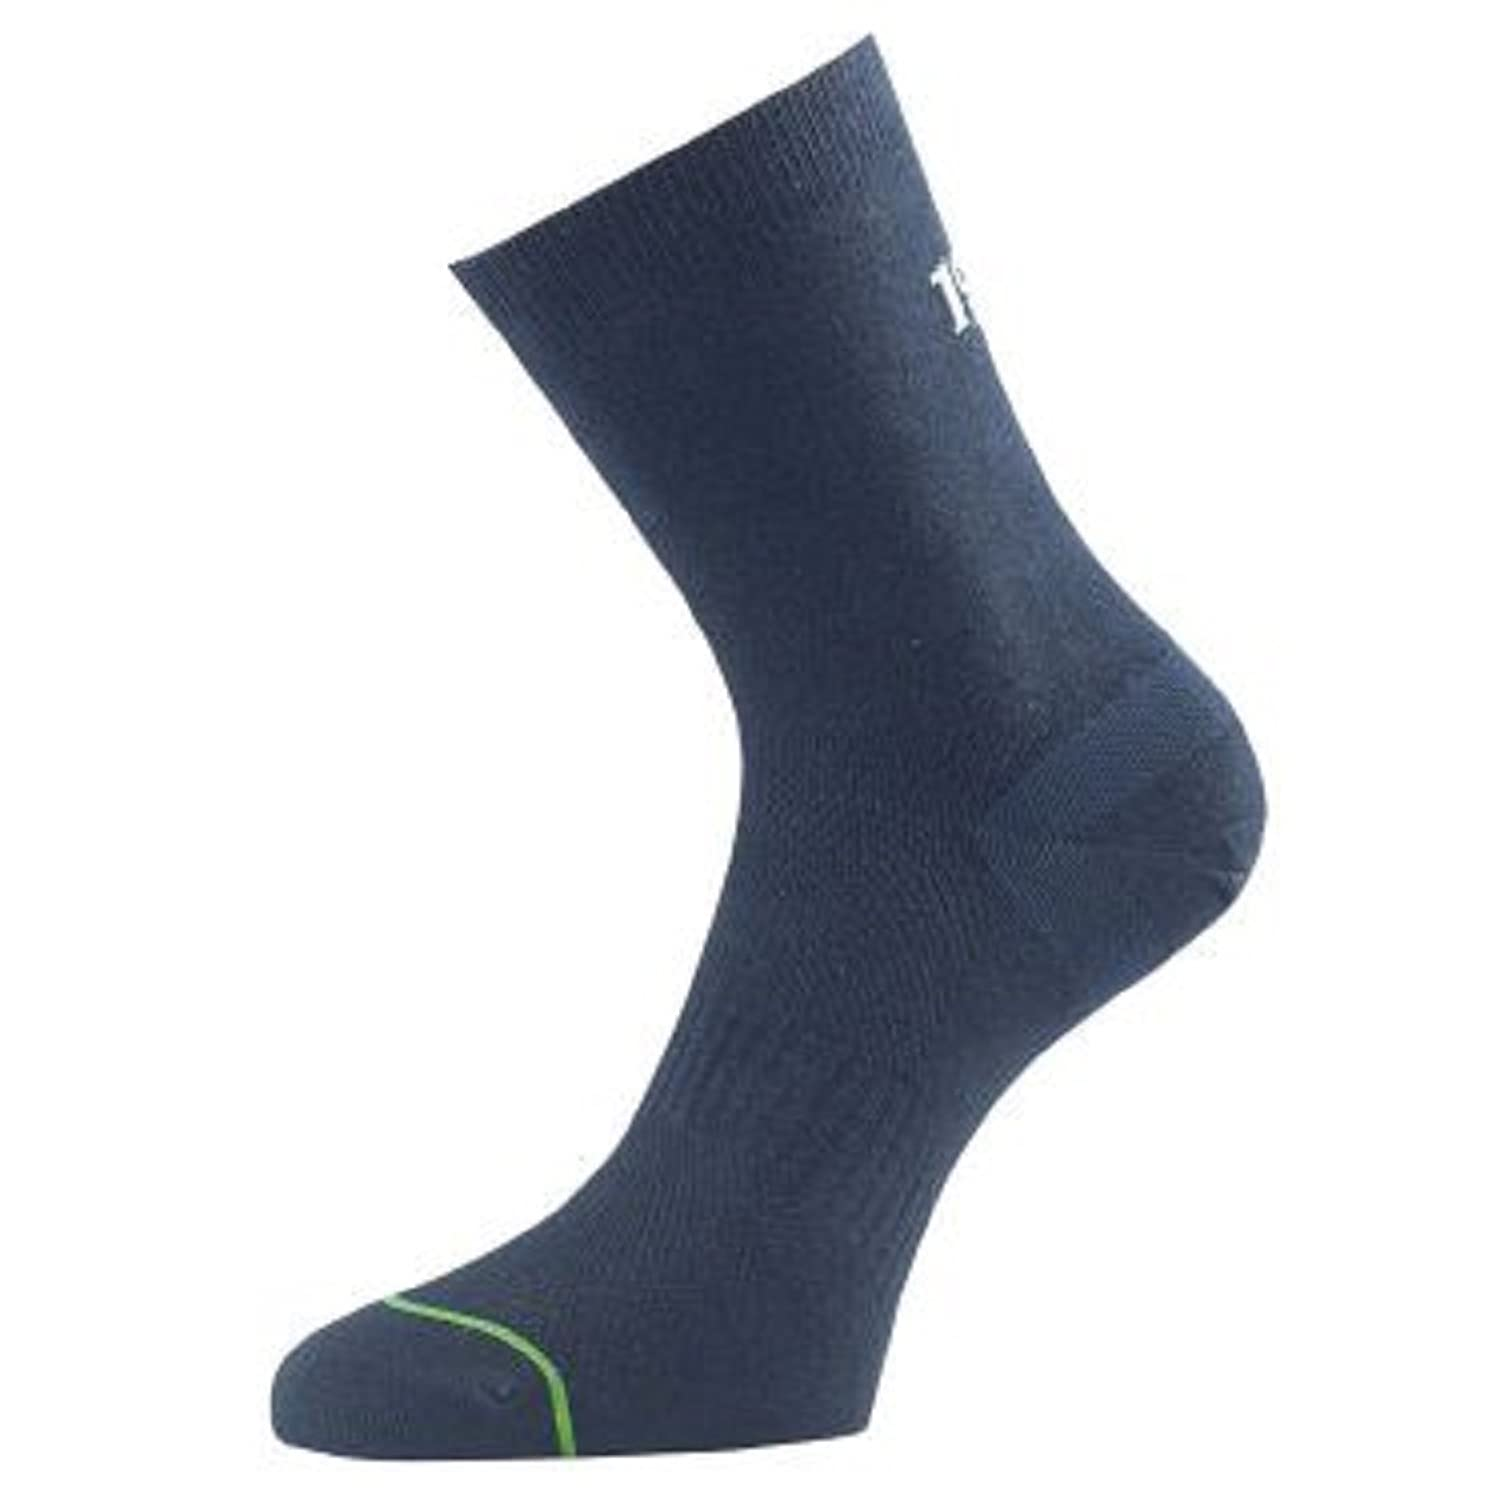 1000 Mile Ultimate Tactel Women's Liner Socks - AW16